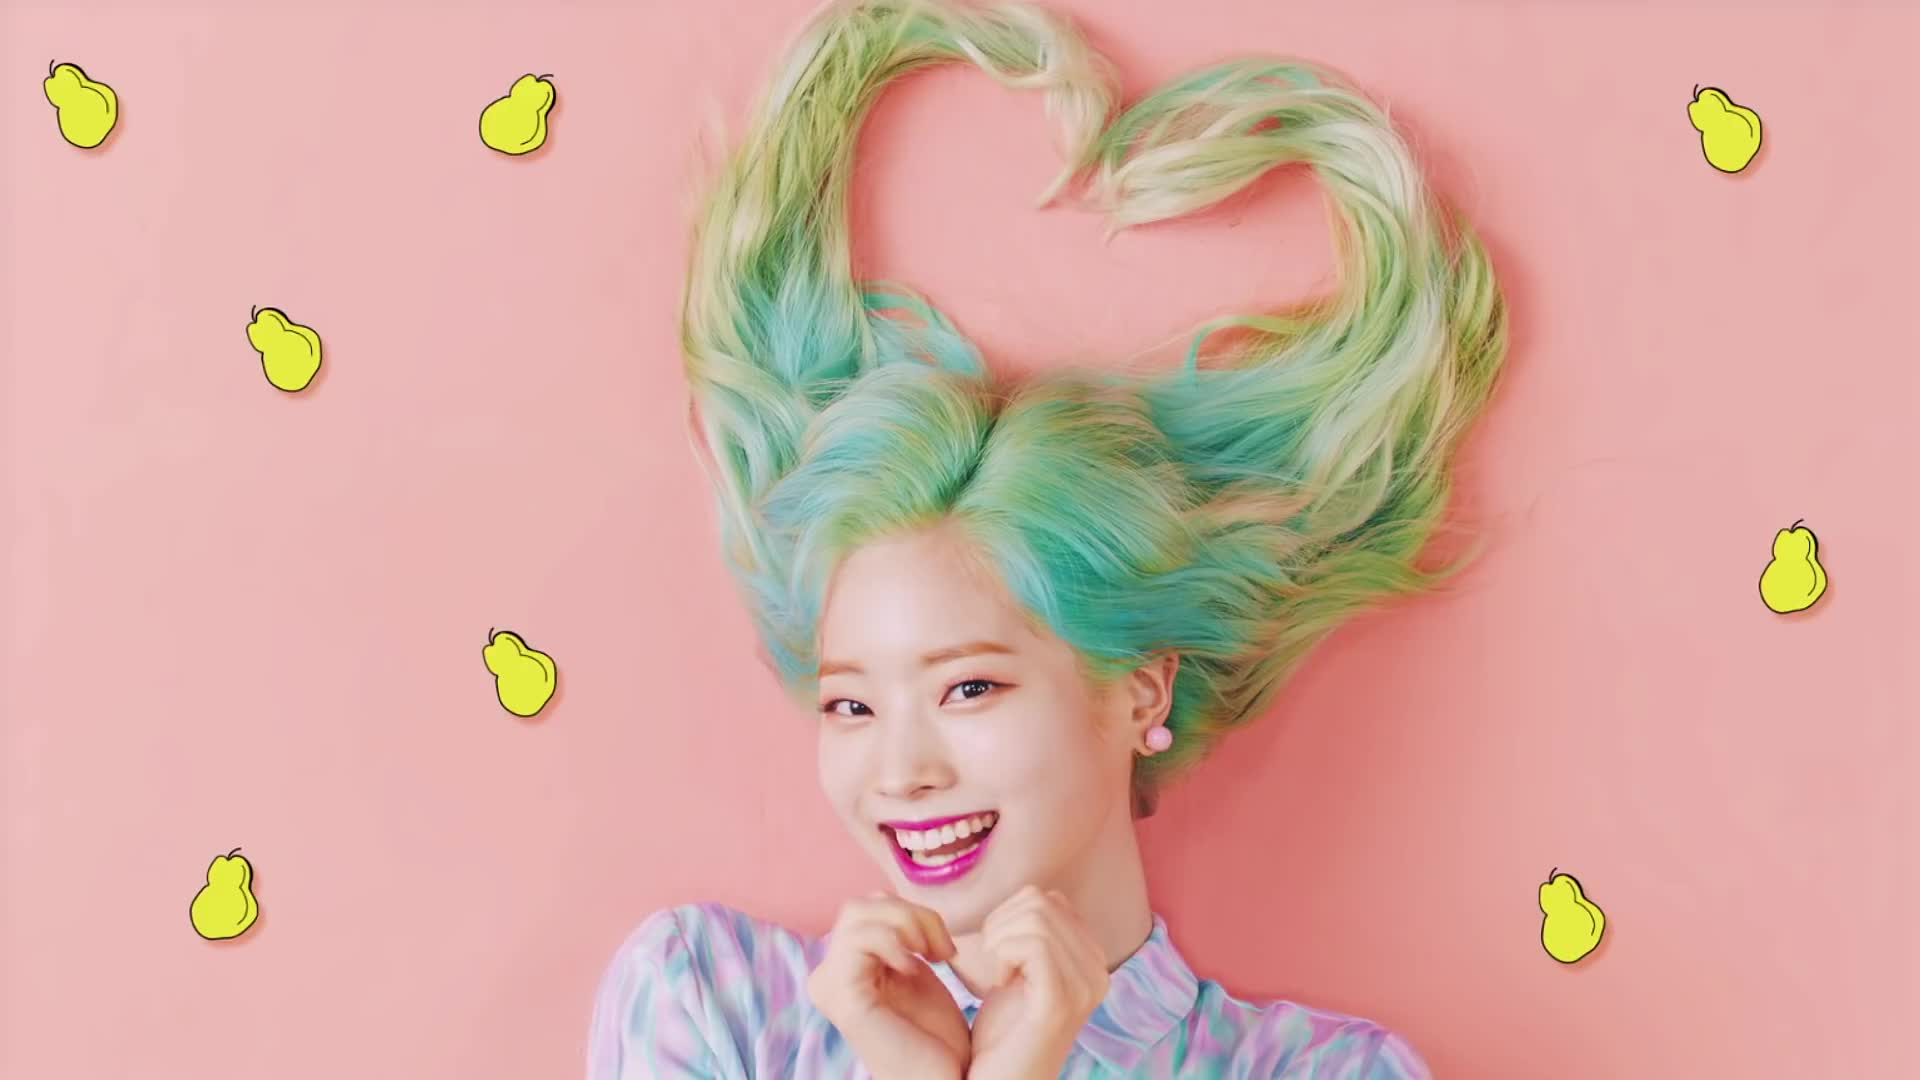 TWICEHAPPY HAPPYDahyun 8 GIF by dub dubudabu Find Make 1920x1080